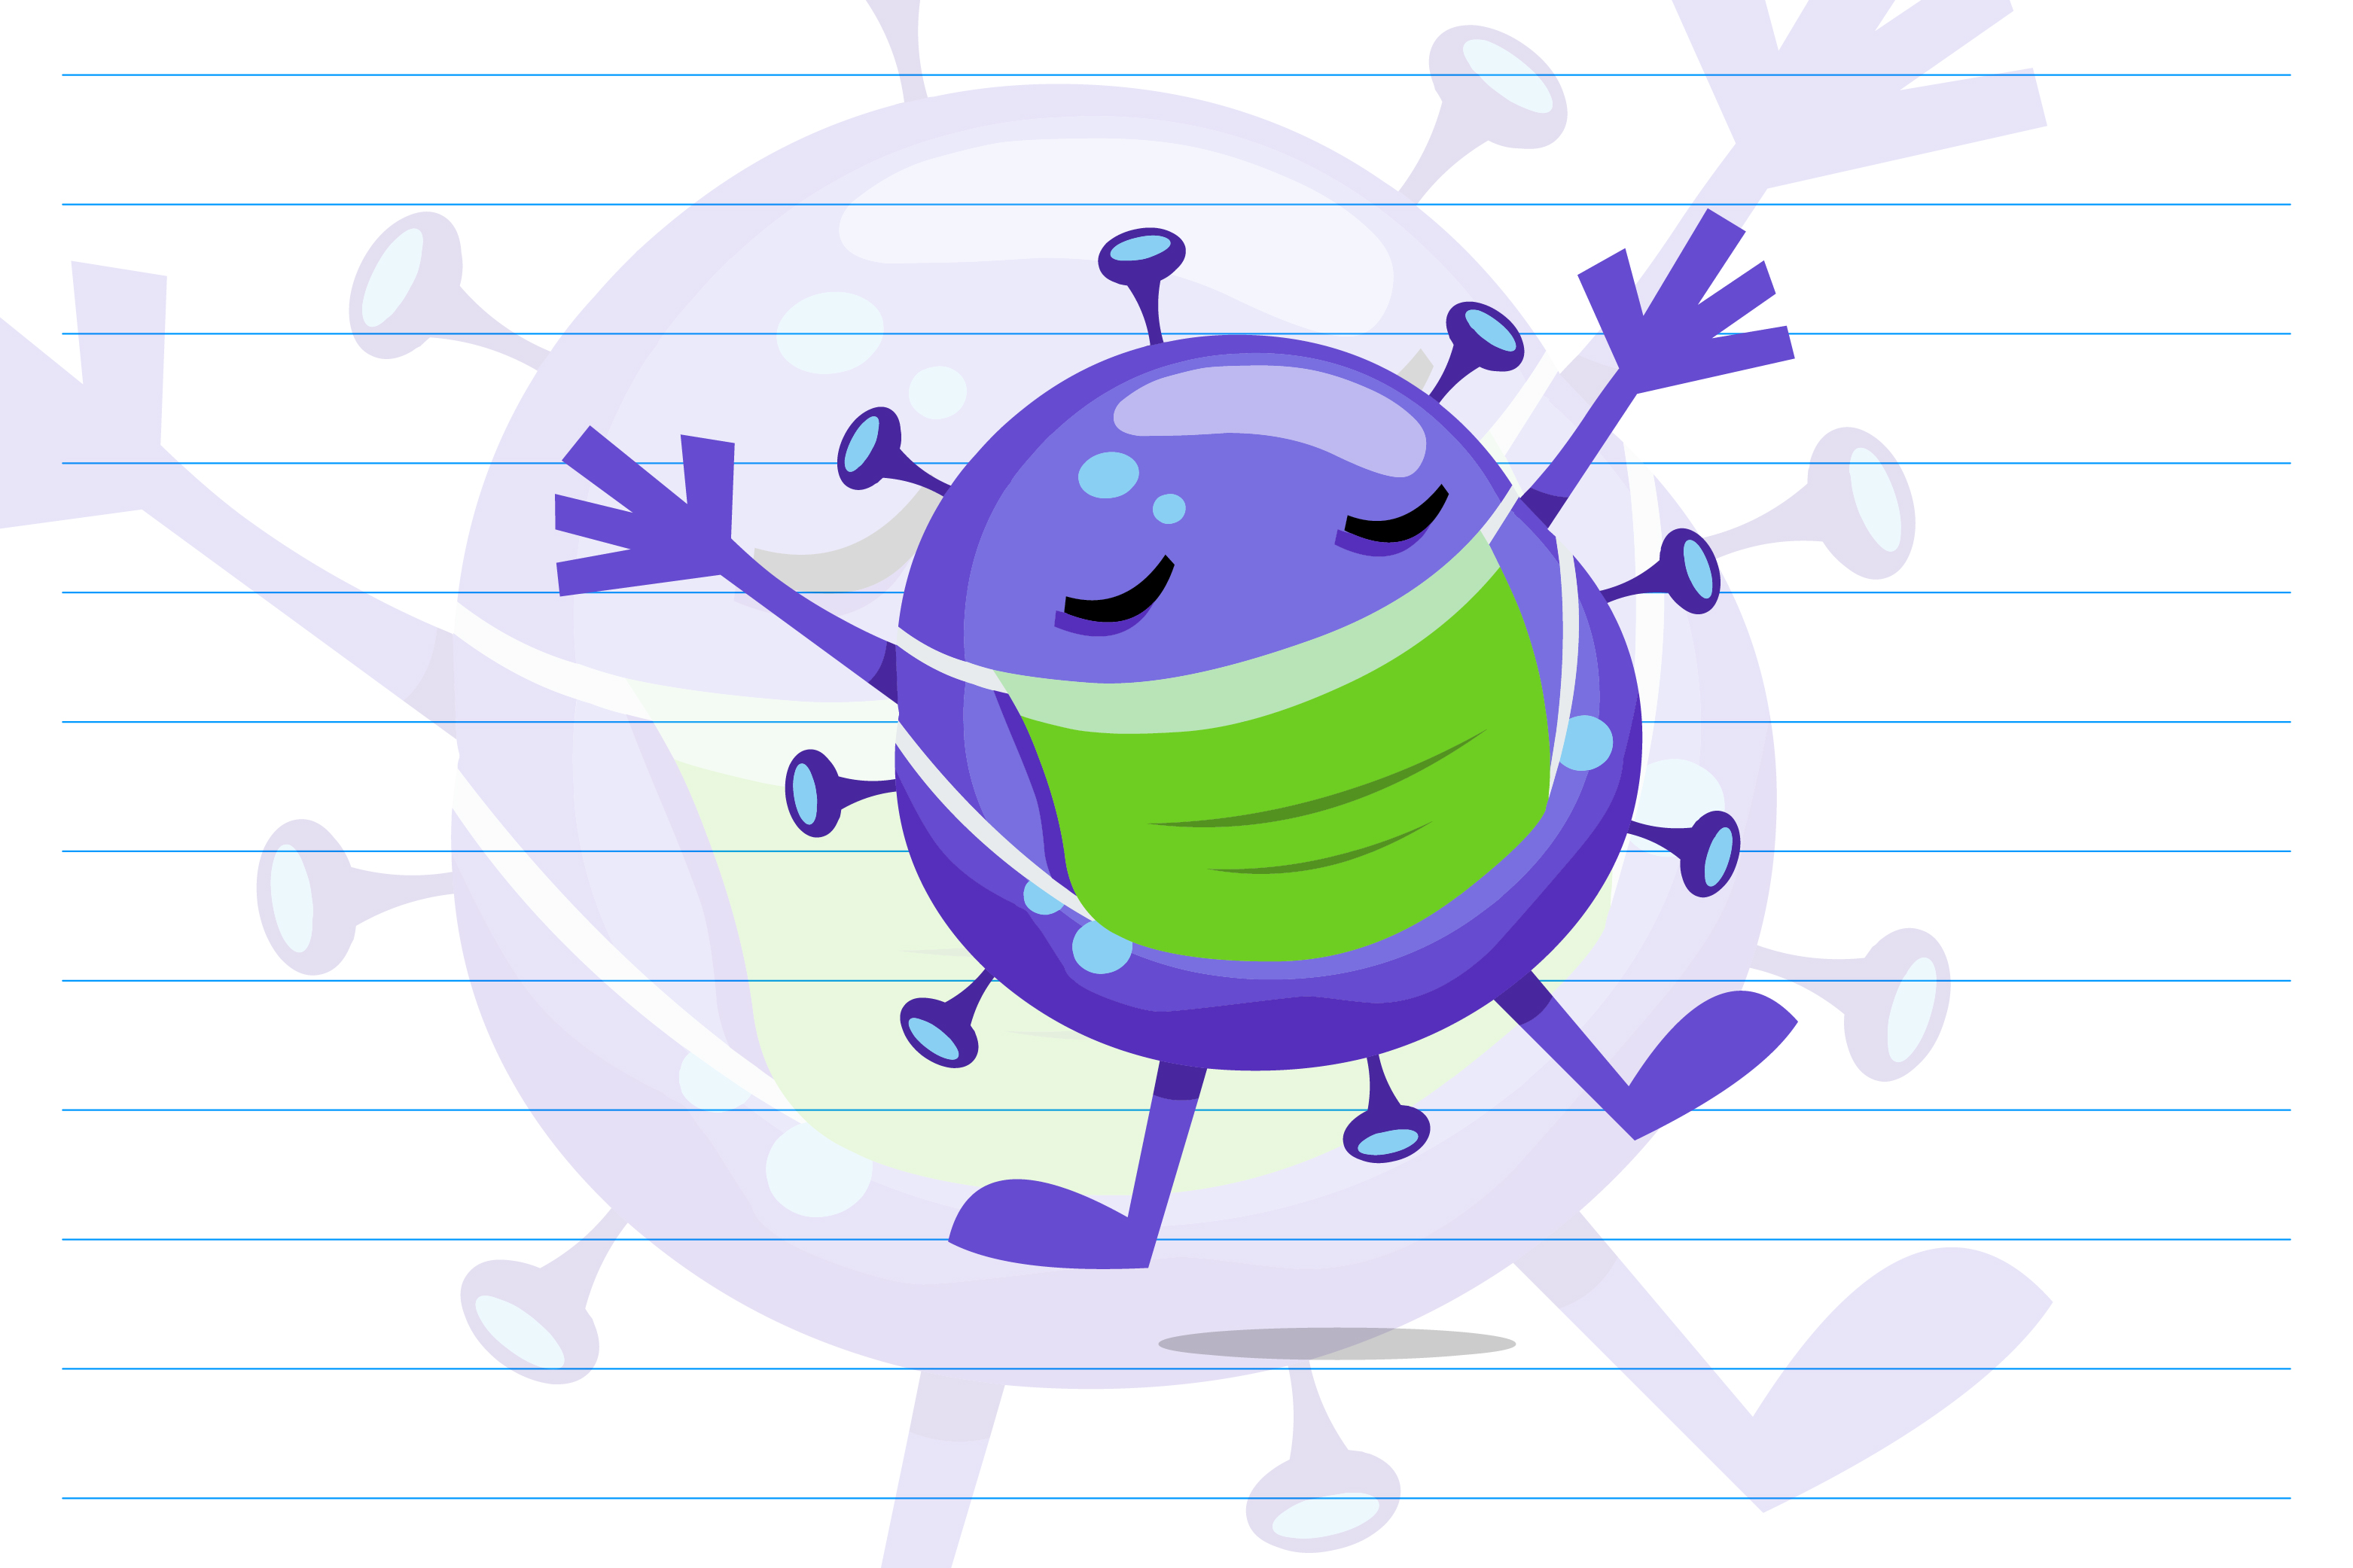 Download Free Cute Virus Cartoon Character Vector Graphic By Contr4 Creative Fabrica for Cricut Explore, Silhouette and other cutting machines.